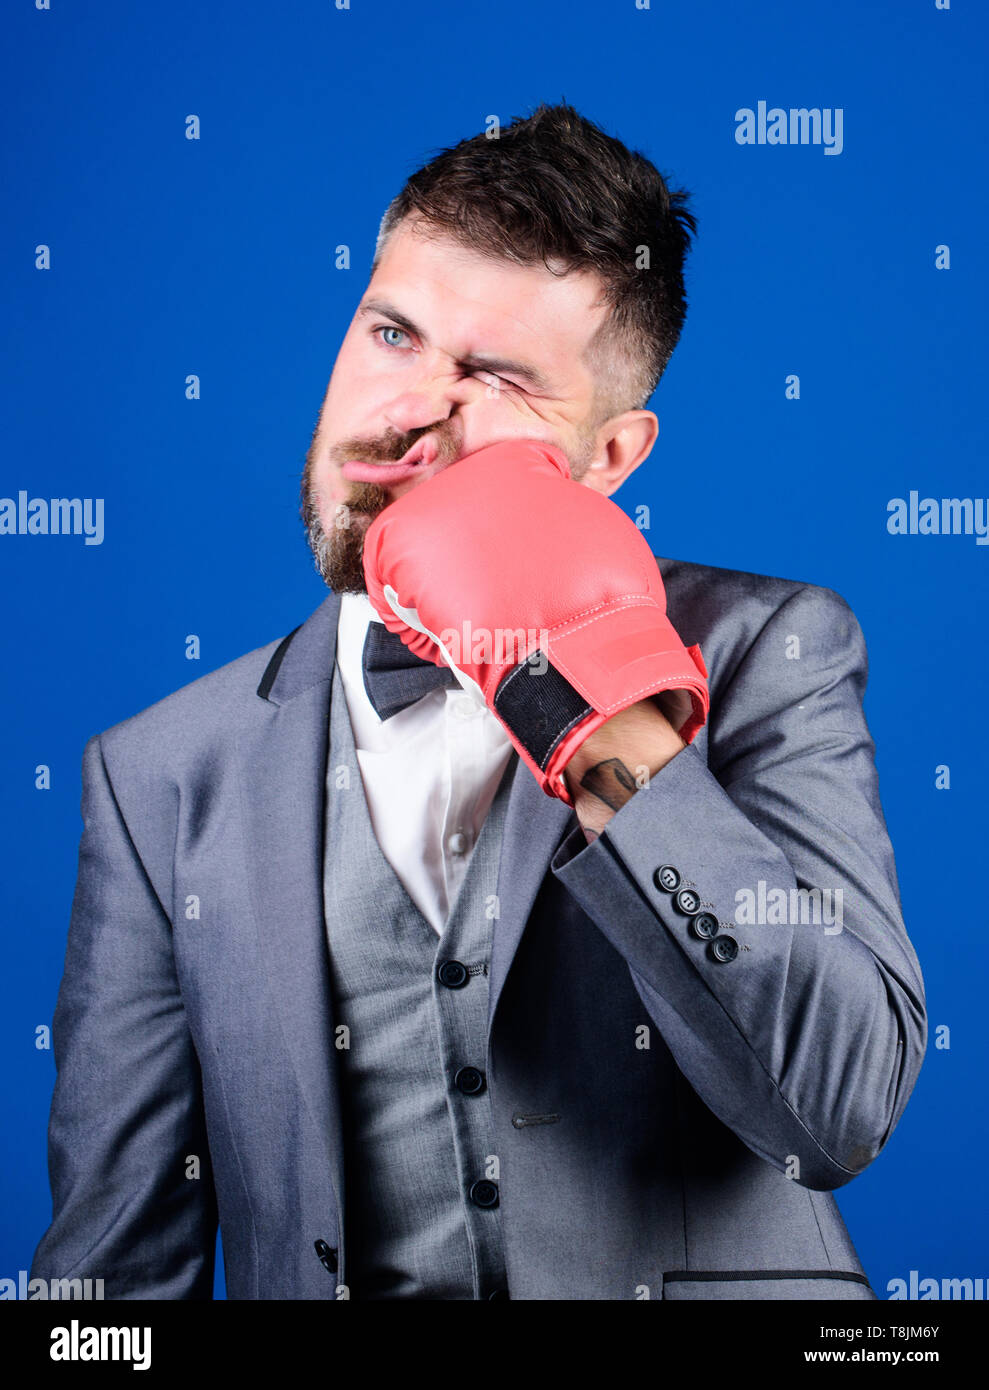 knockout and energy. Fight. Business and sport success. powerful man boxer ready for corporate battle. businessman in suit and bow tie. bearded man in boxing gloves punching. Strength and motivation. - Stock Image